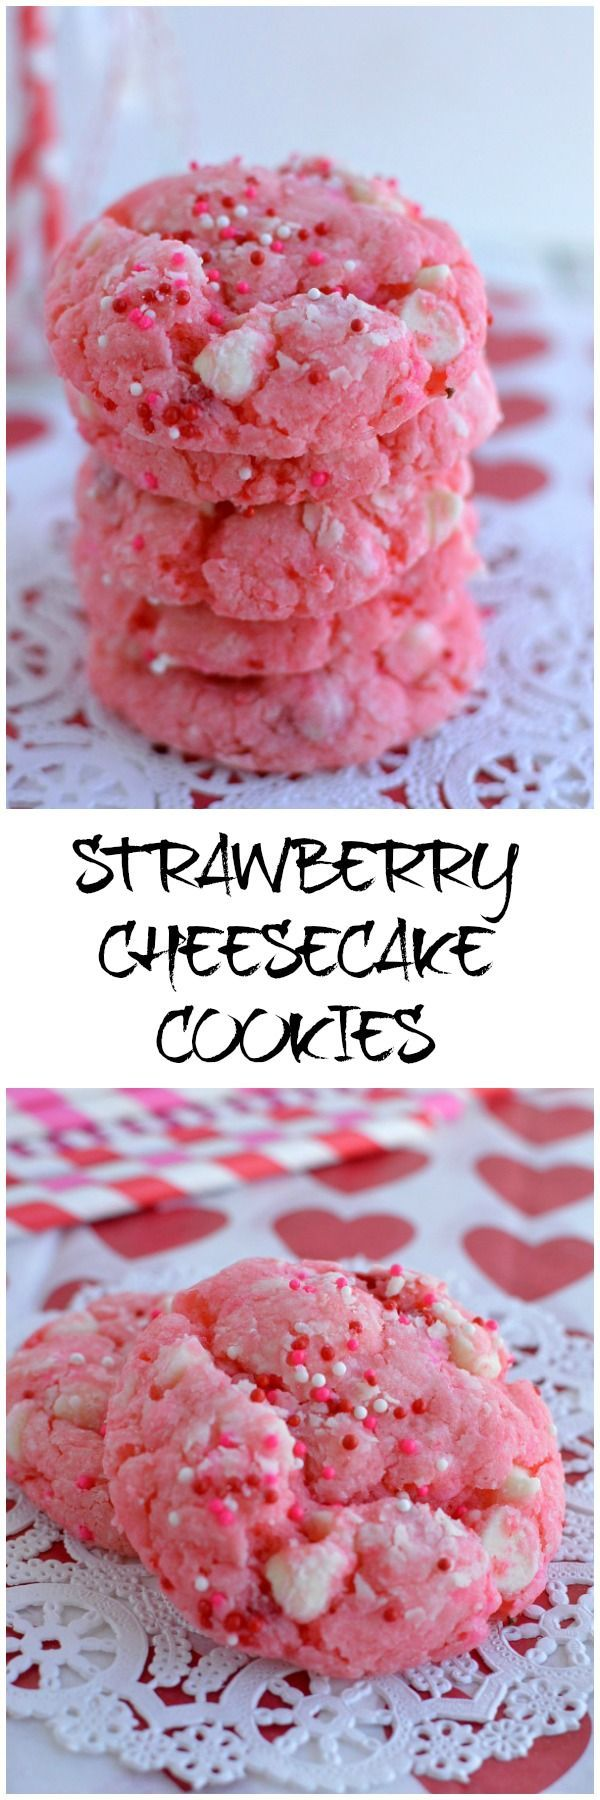 Strawberry Cheesecake Cookies are an easy recipe since they begin with a cake mix! Just right for Valenines Day!